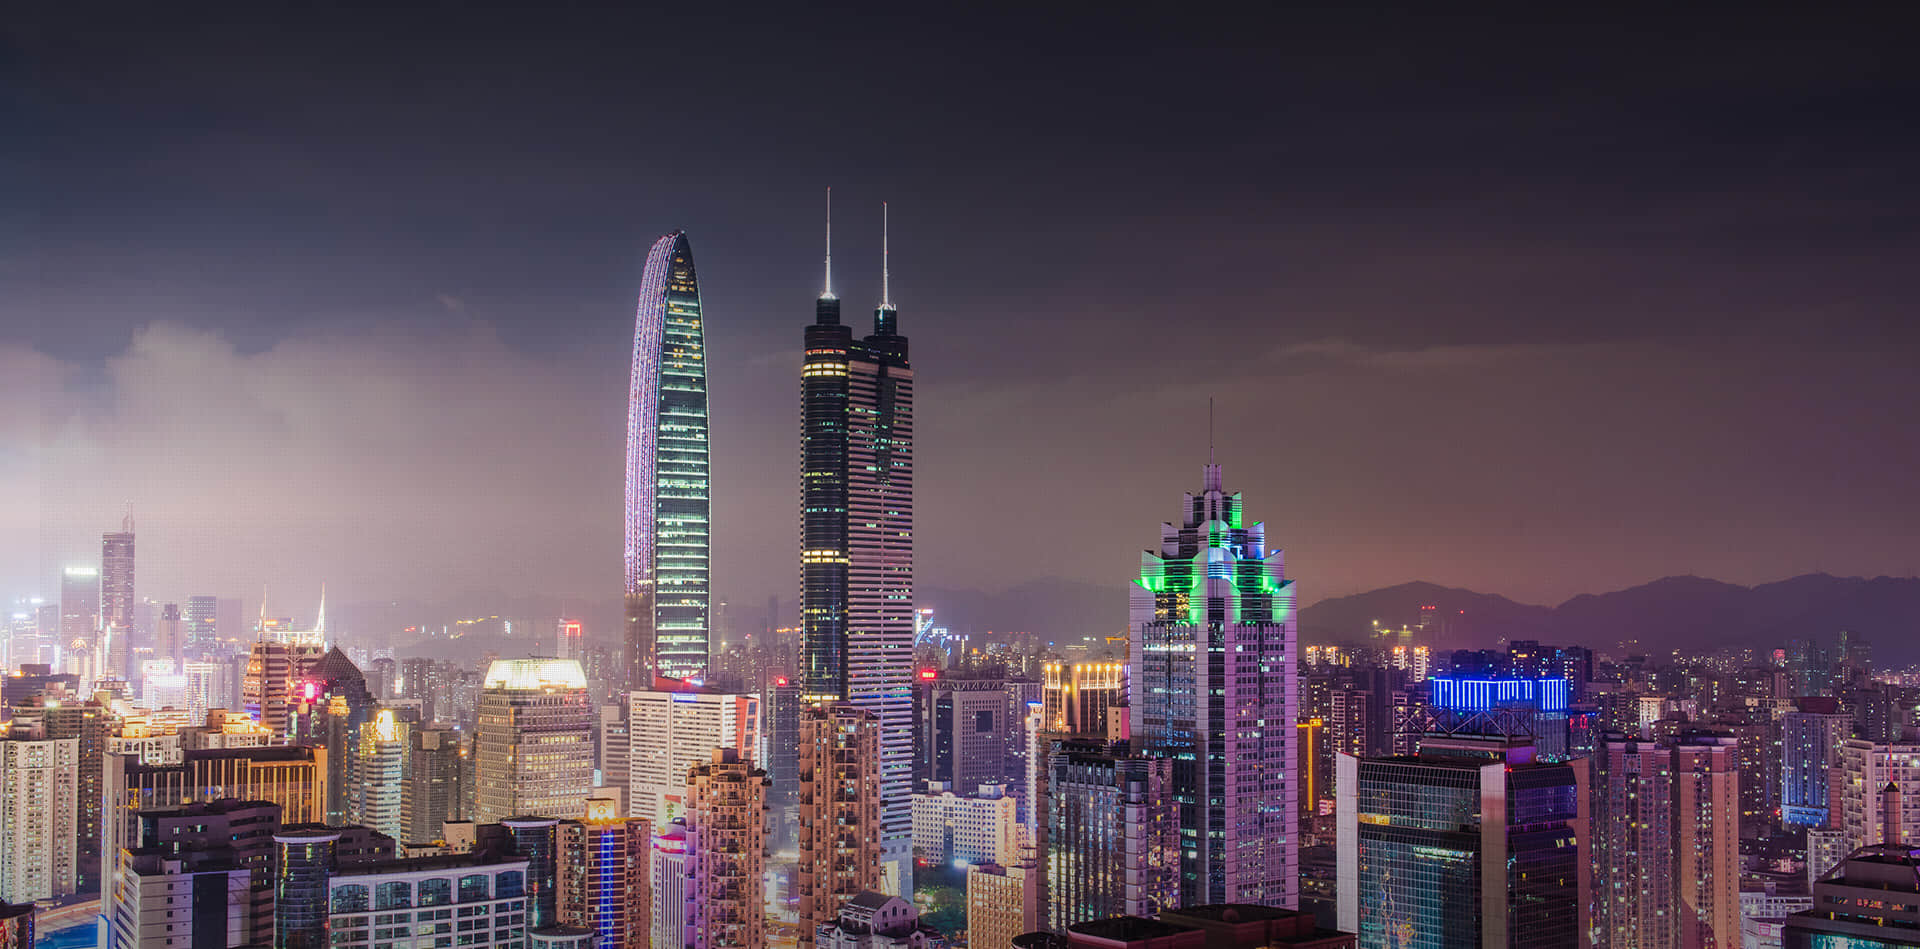 Shenzhen is where Boffin was founded in 1996 and has been Boffin's global delivery center since 2007.